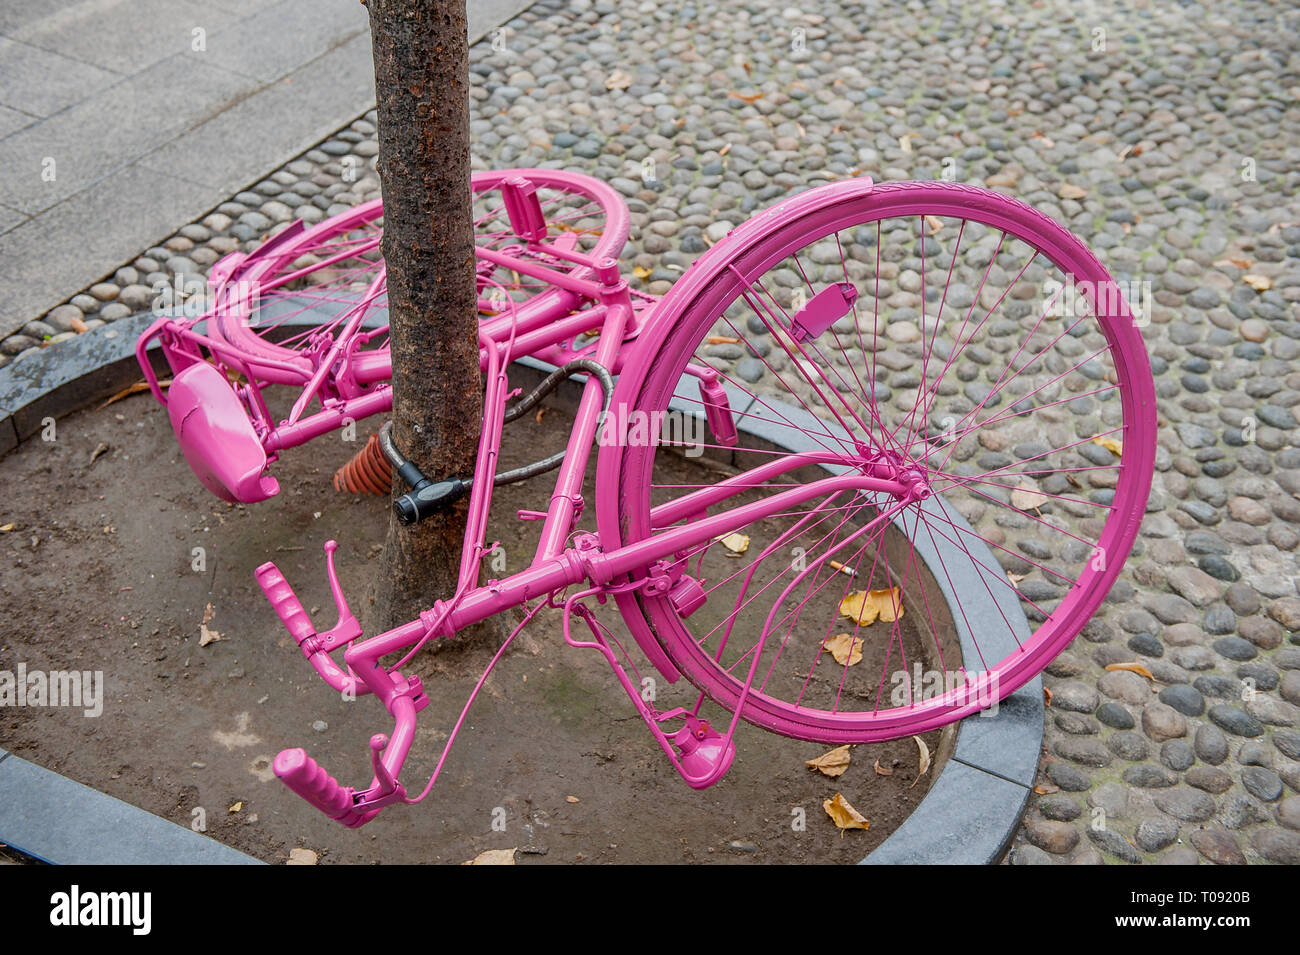 bicycle tied to a tree to avoid theft - Stock Image